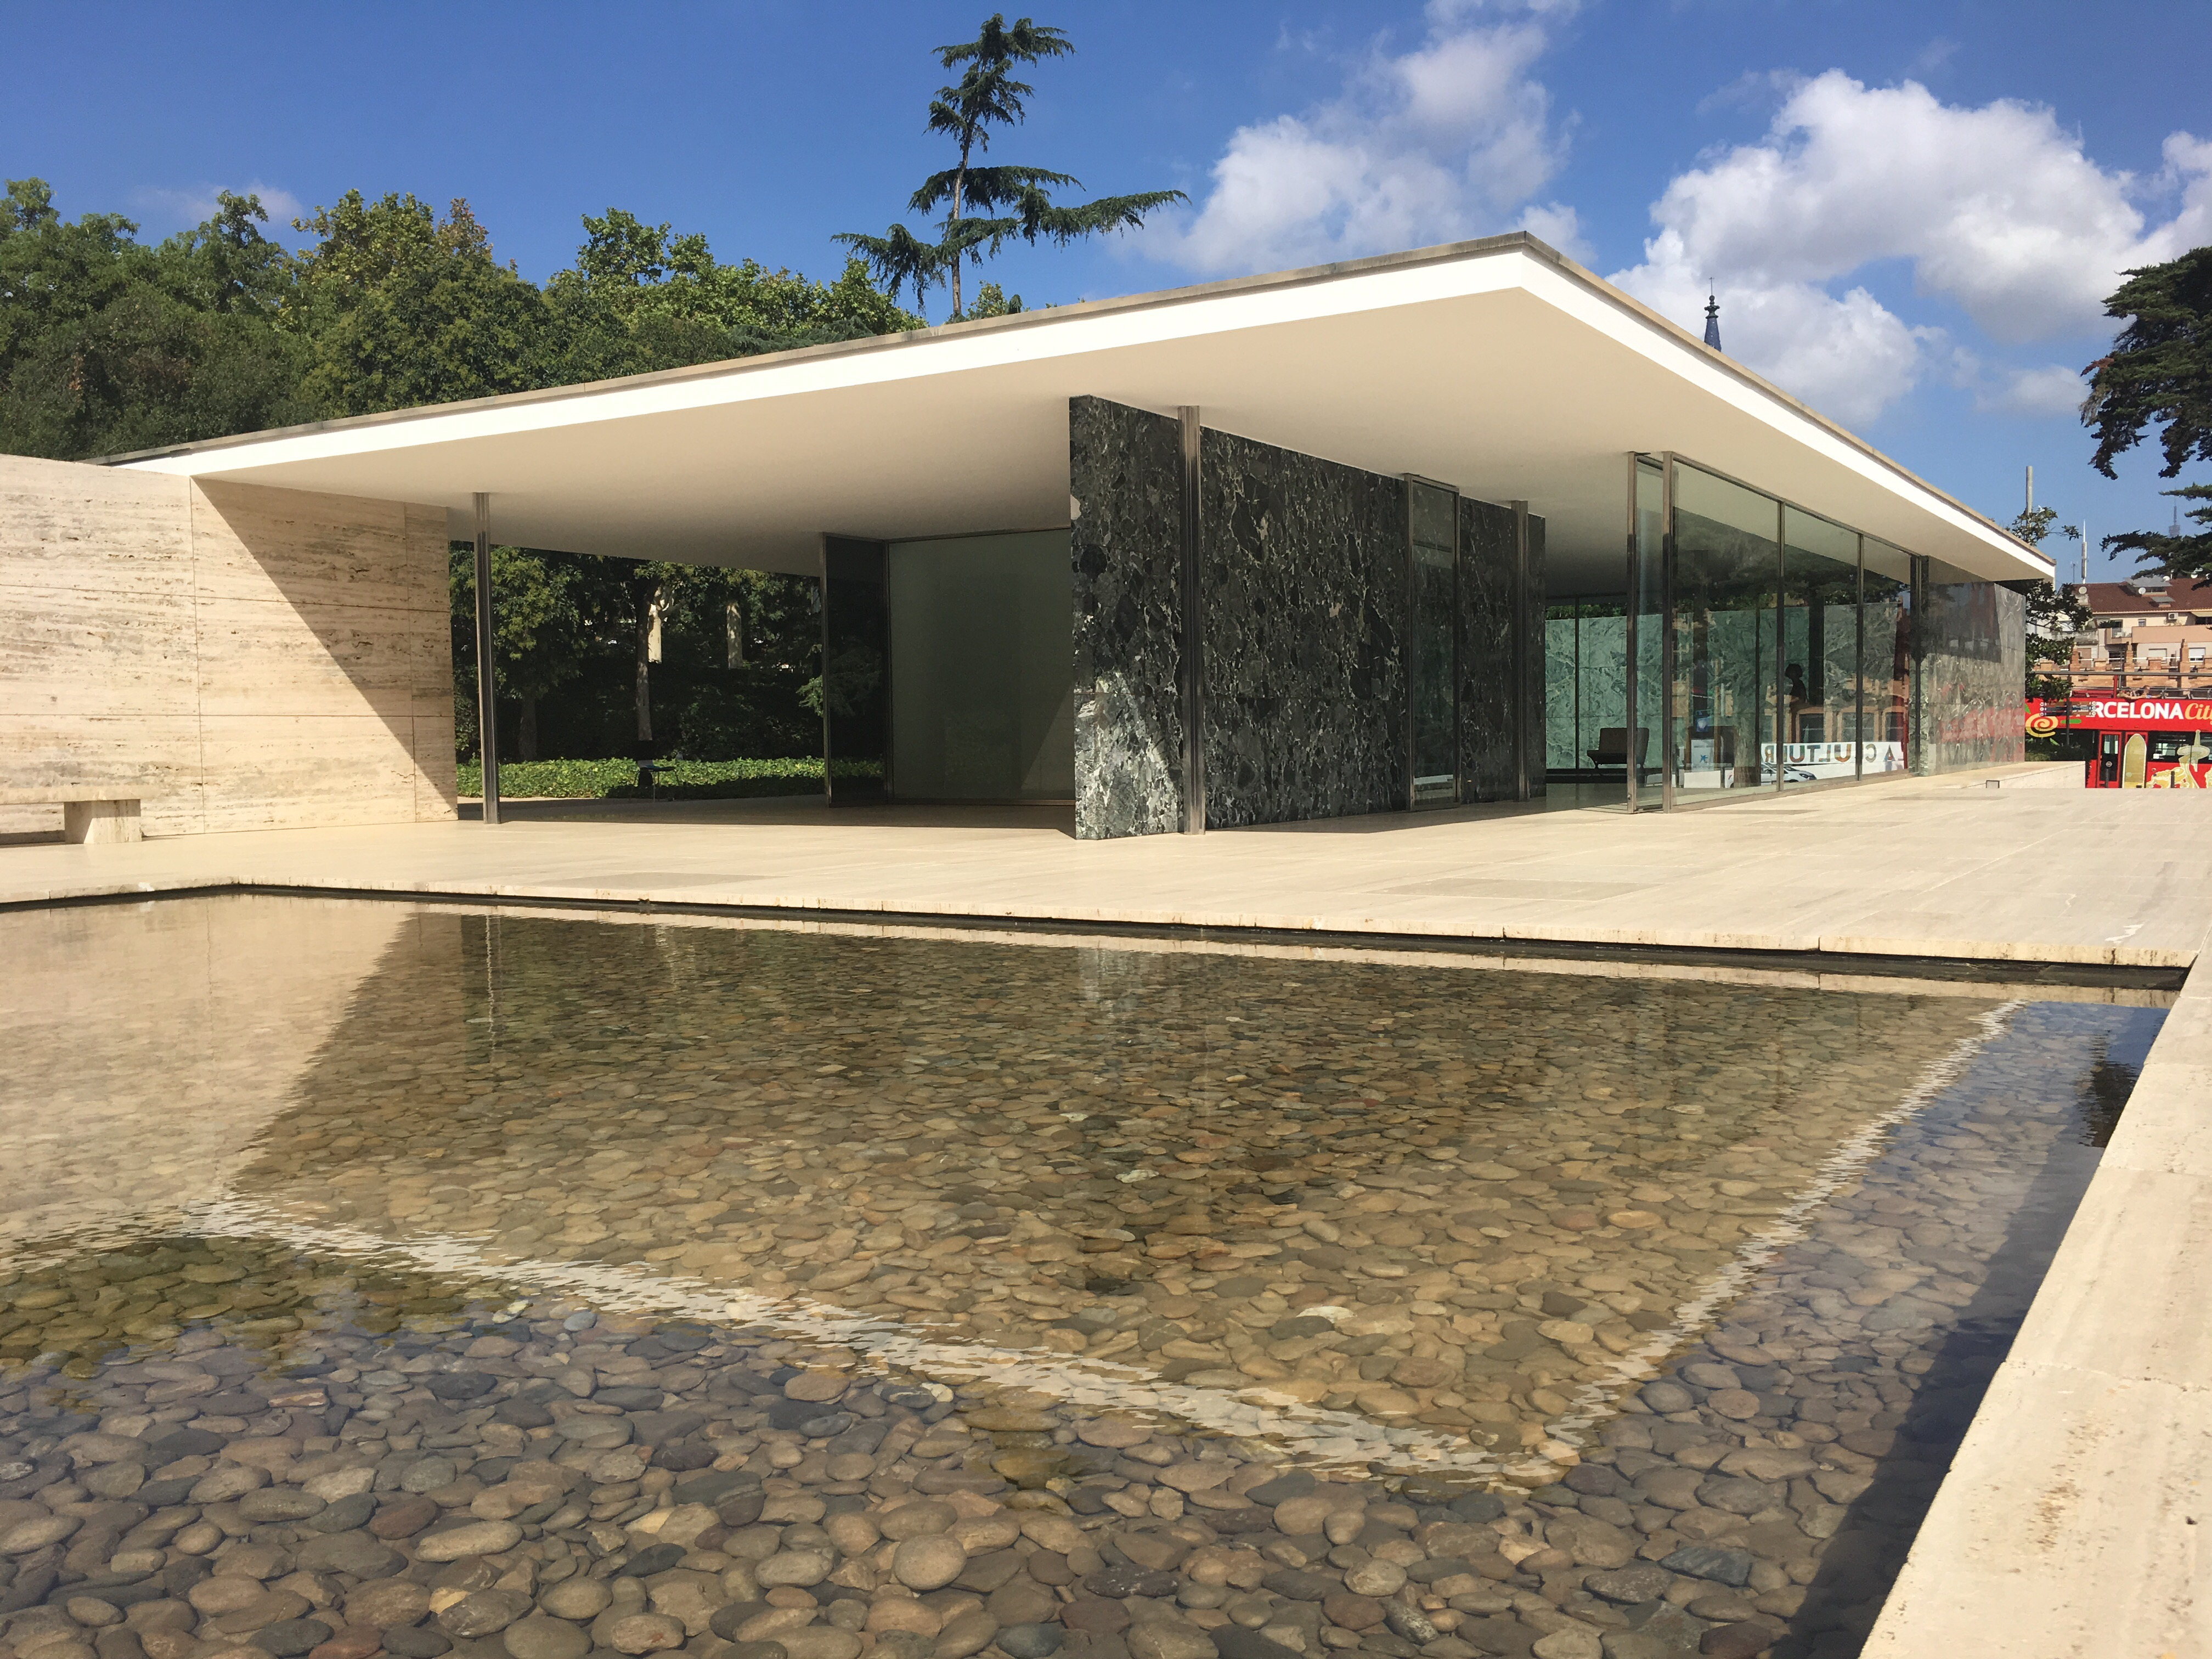 mies van der rohe 39 s barcelona pavilion architectural highlight of our summer trip to spain. Black Bedroom Furniture Sets. Home Design Ideas